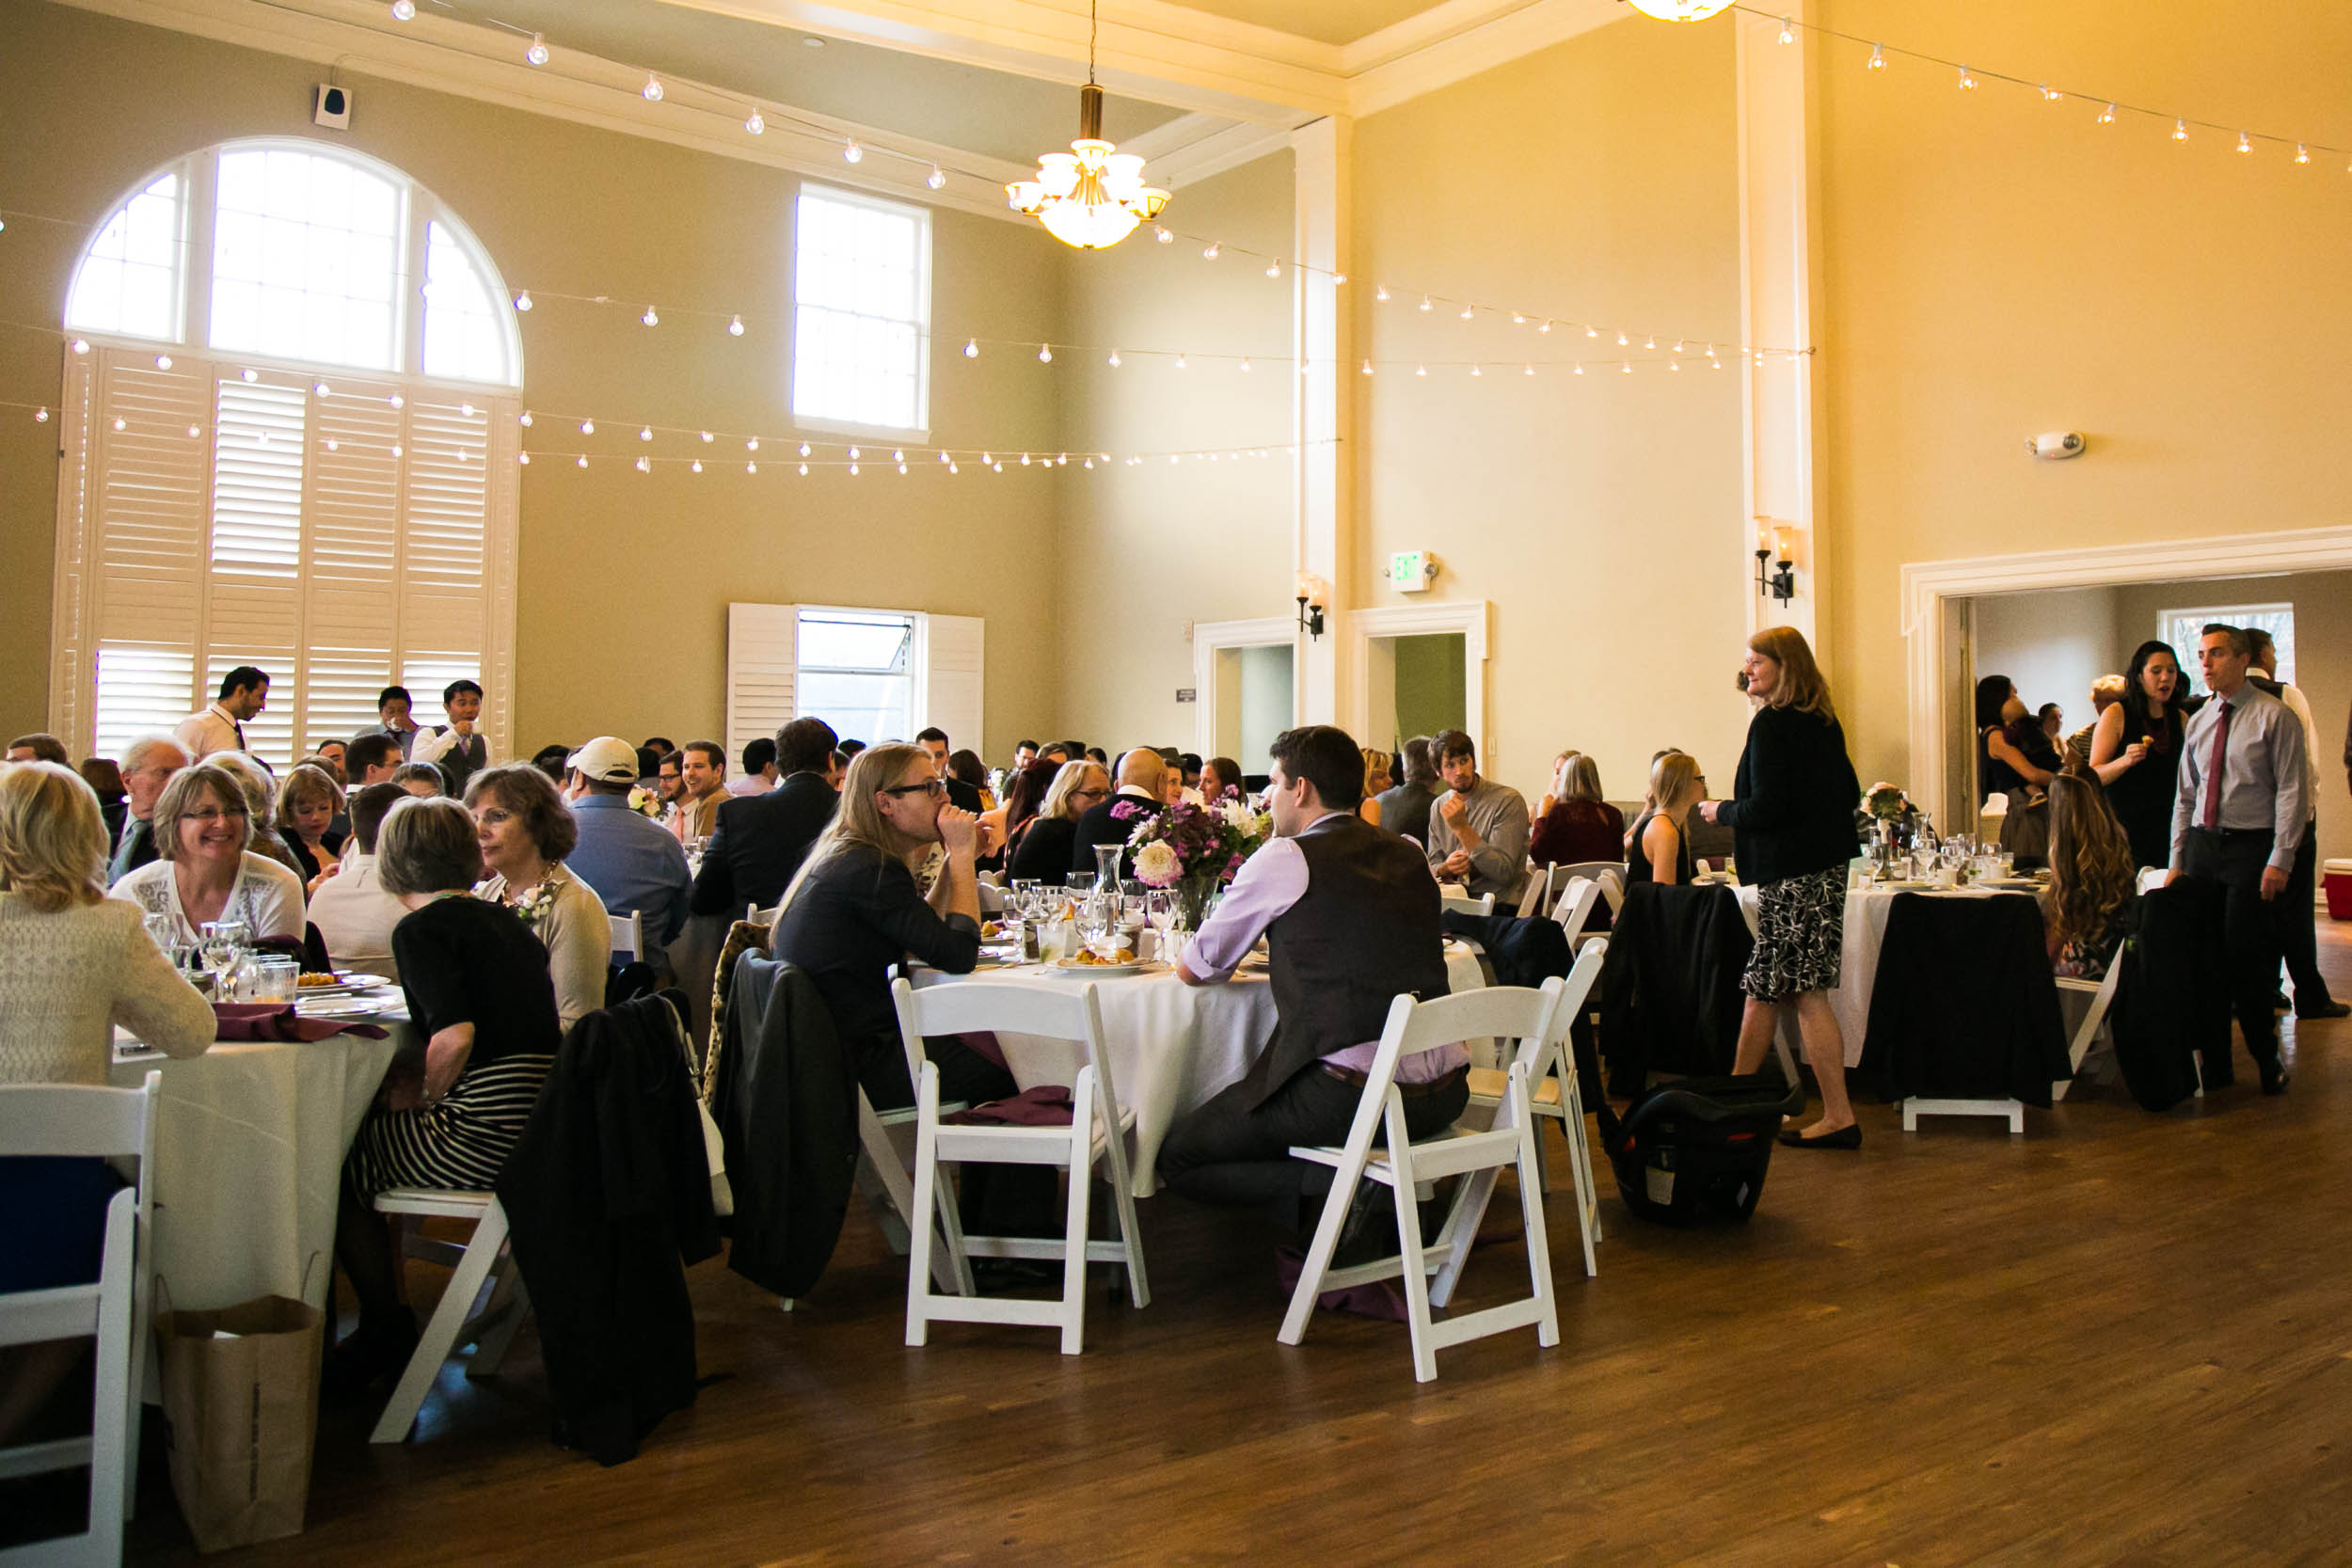 Wedding reception | The Hall at Greenlake Wedding Reception Photo | By G. Lin Photography